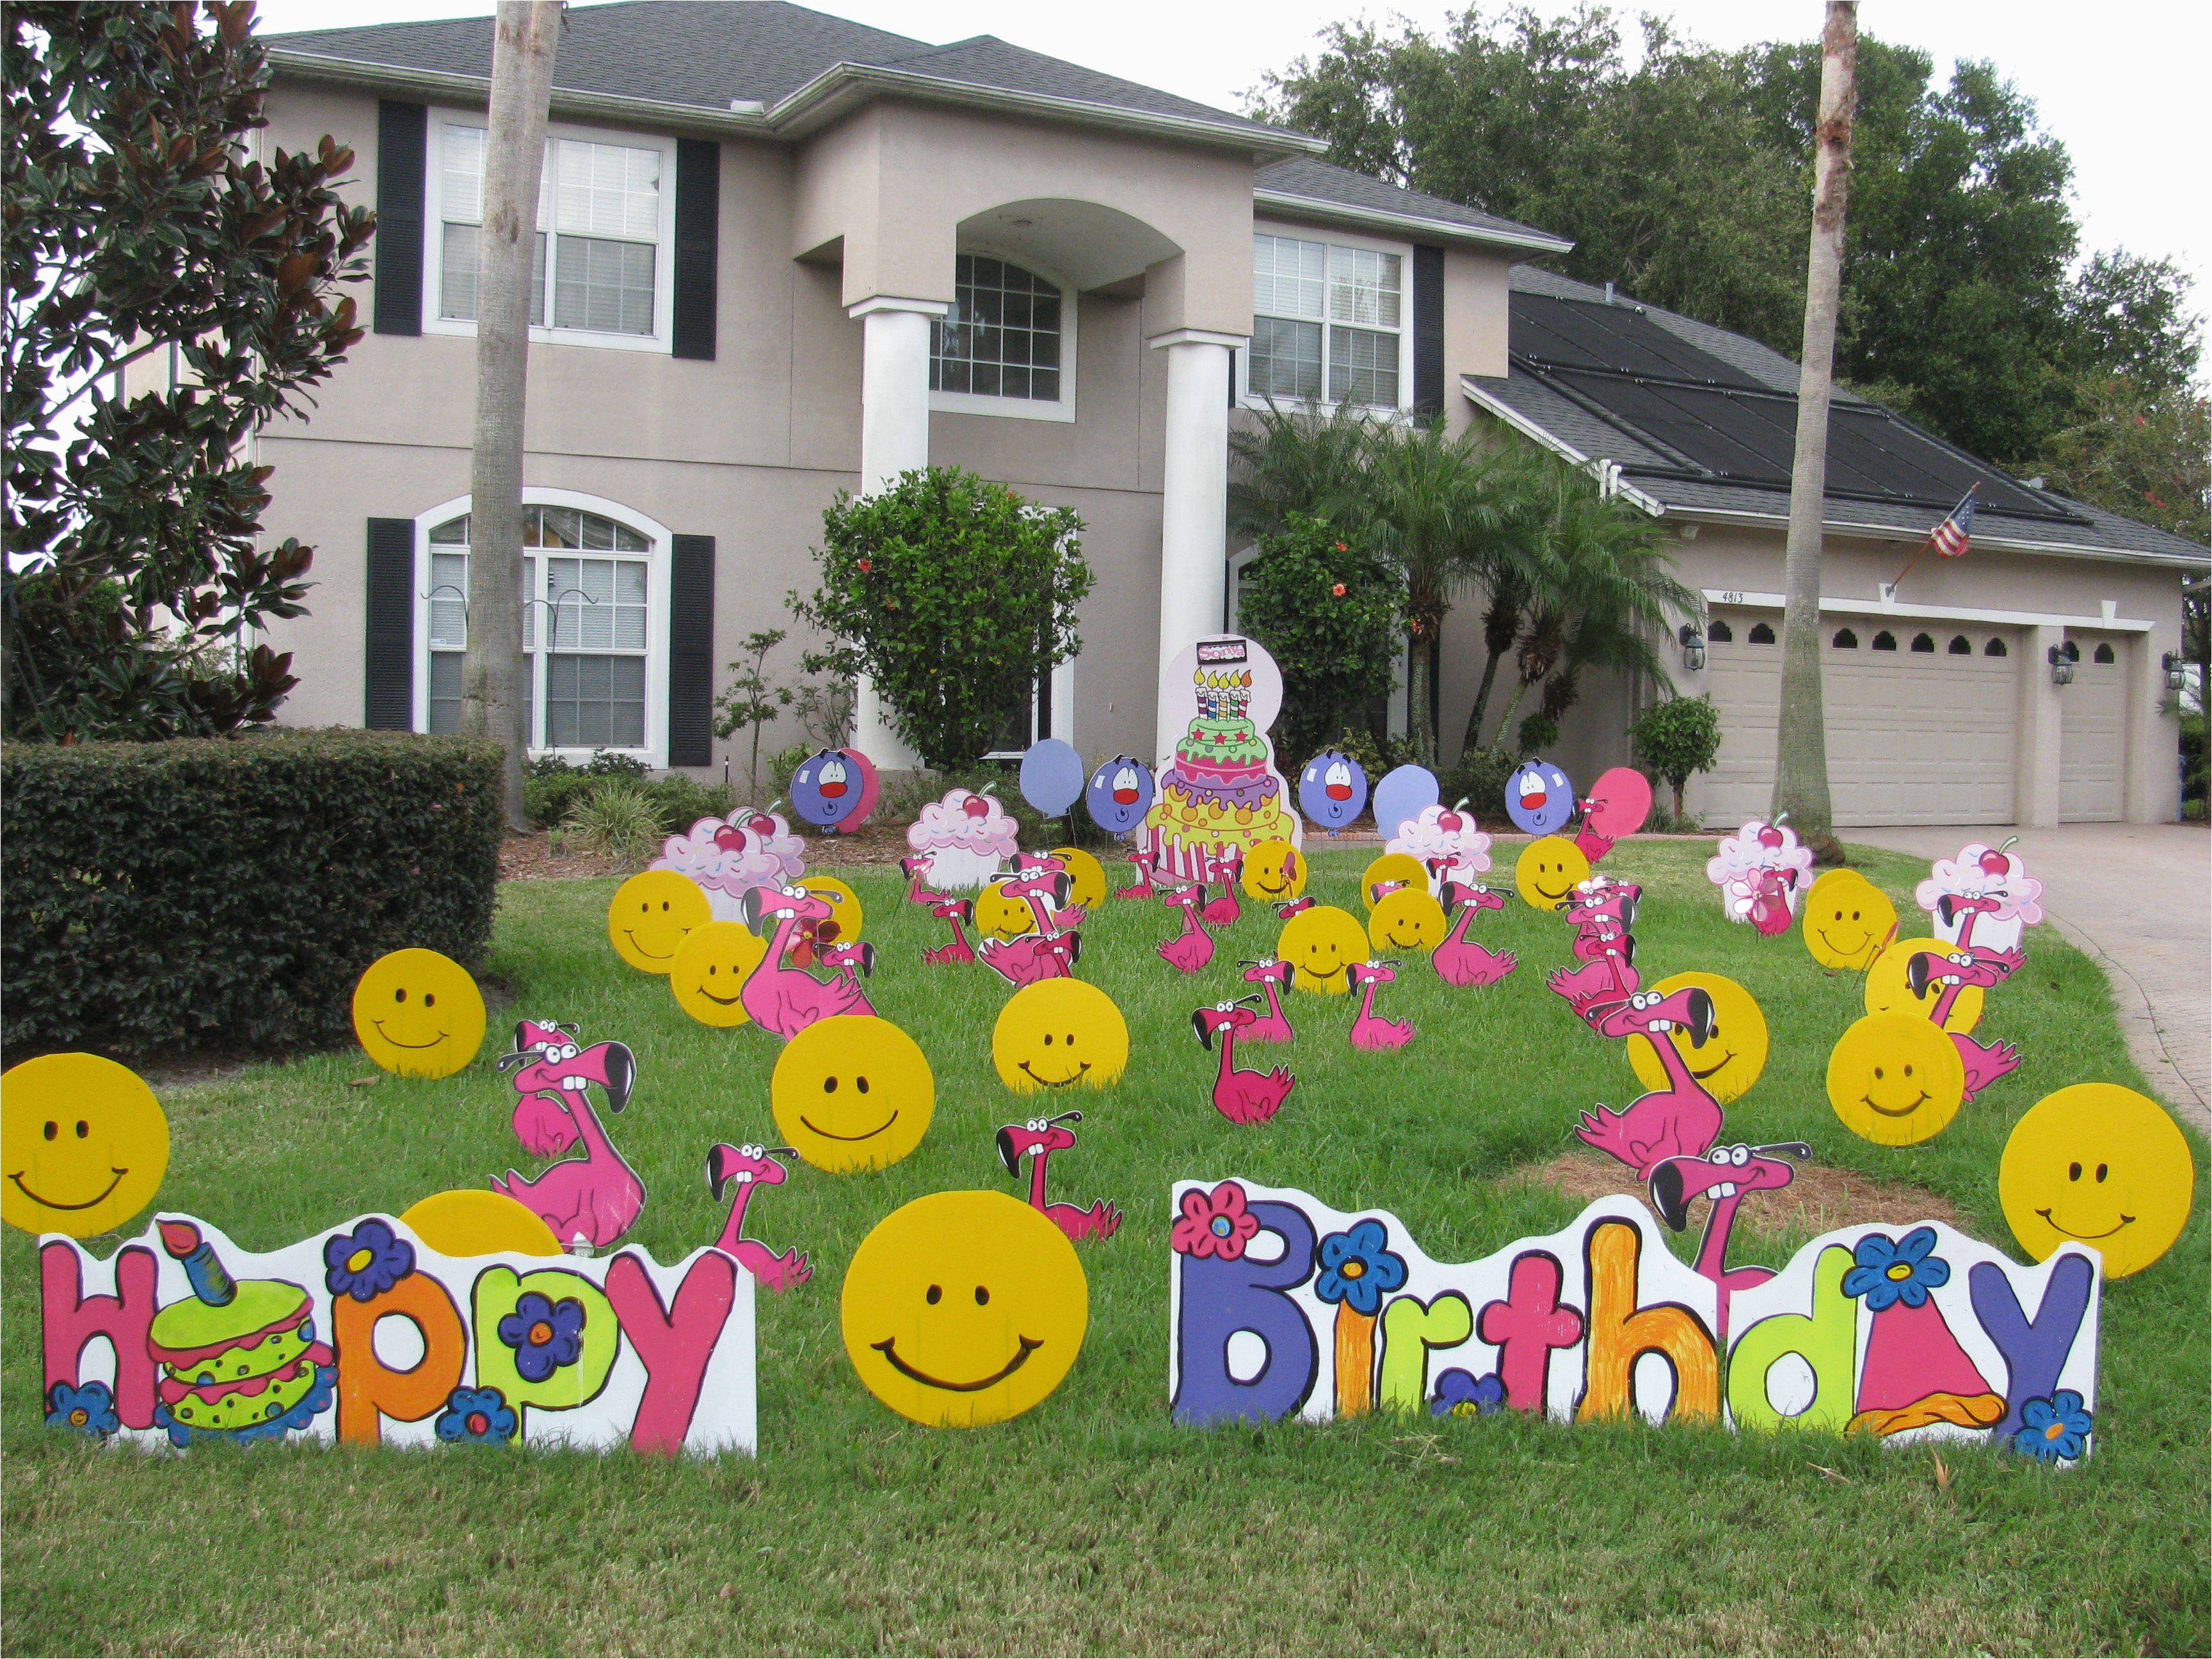 All Images Home Decor Homemade Decoration Ideas For Birthday Party Lawn Concrete Ornaments Winnipeg